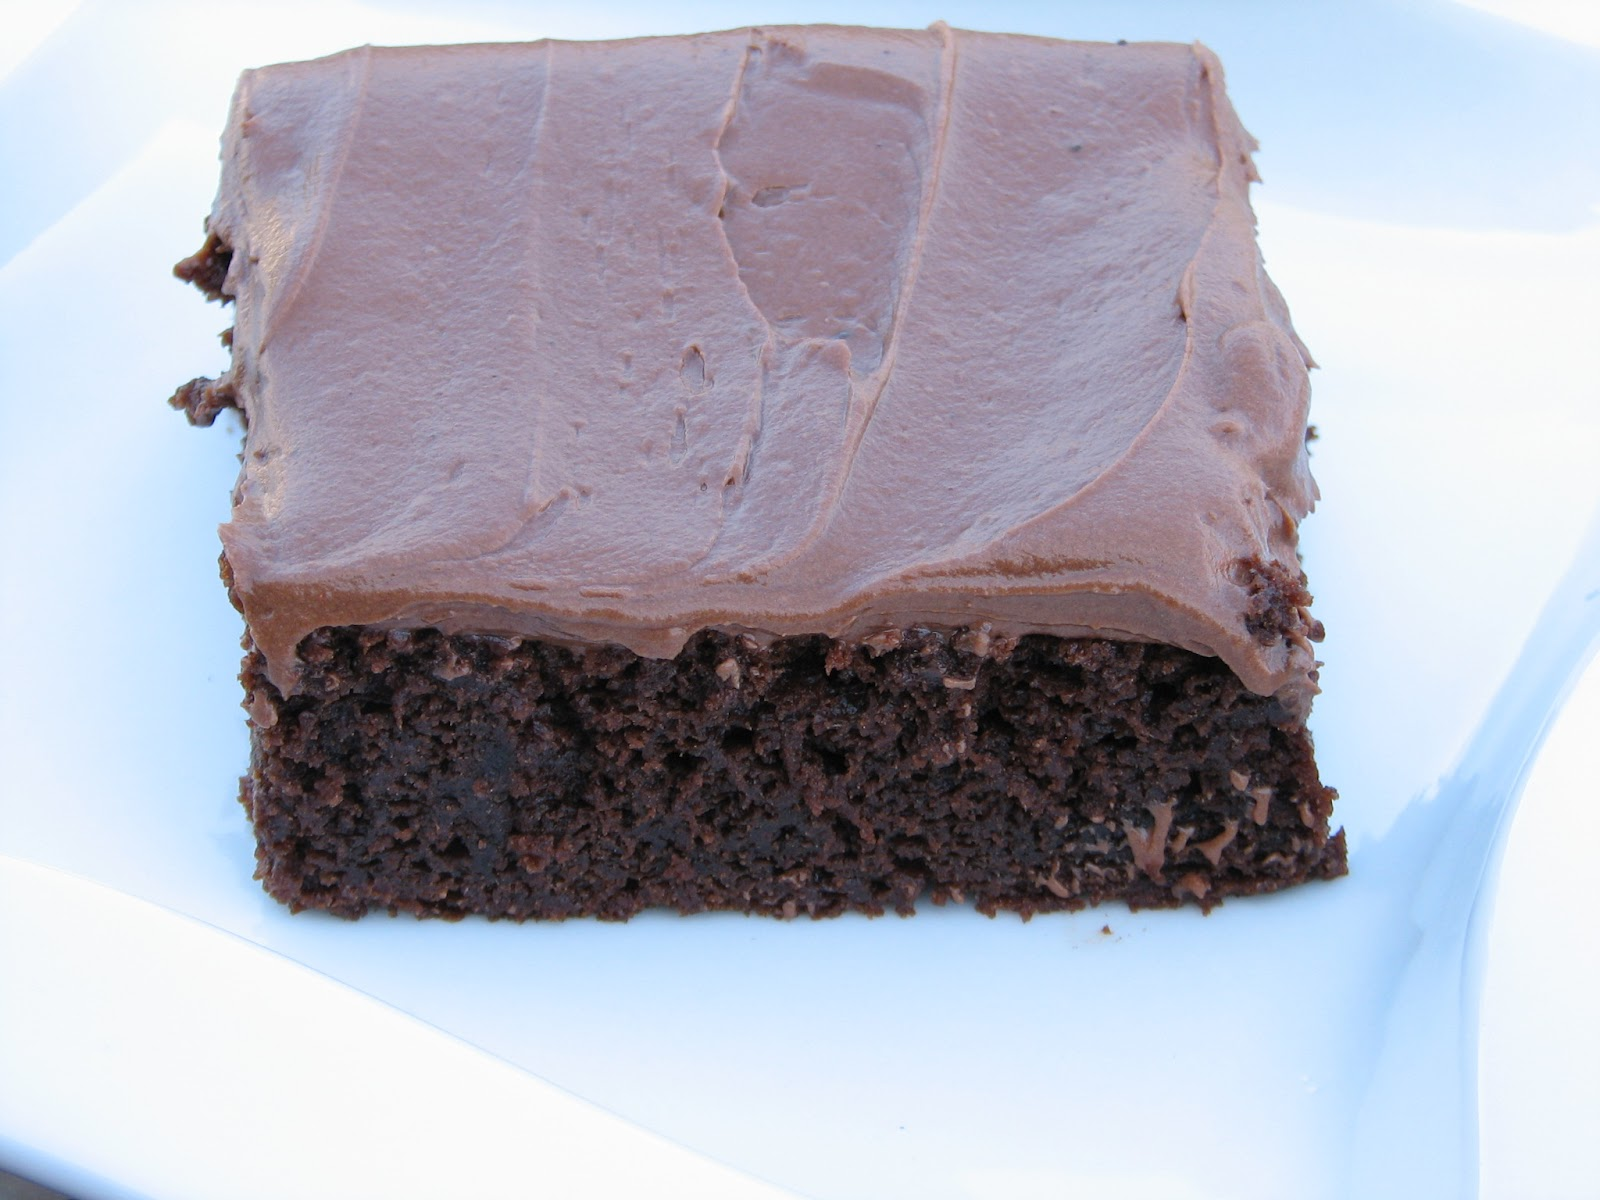 Free Desserts made Delicious: Gluten Free Hershey's Chocolate Cake